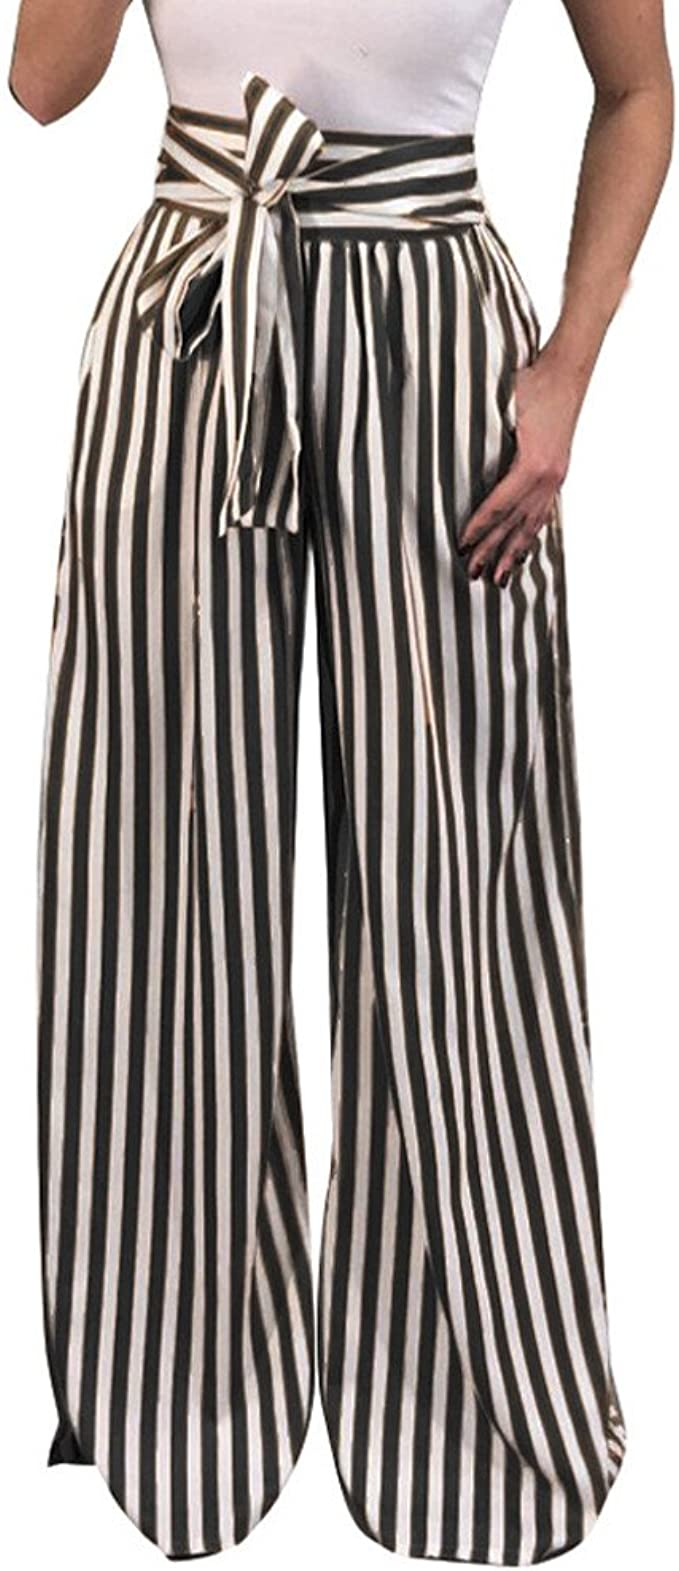 Large ladies white striped design wide leg elasticated waist trousers